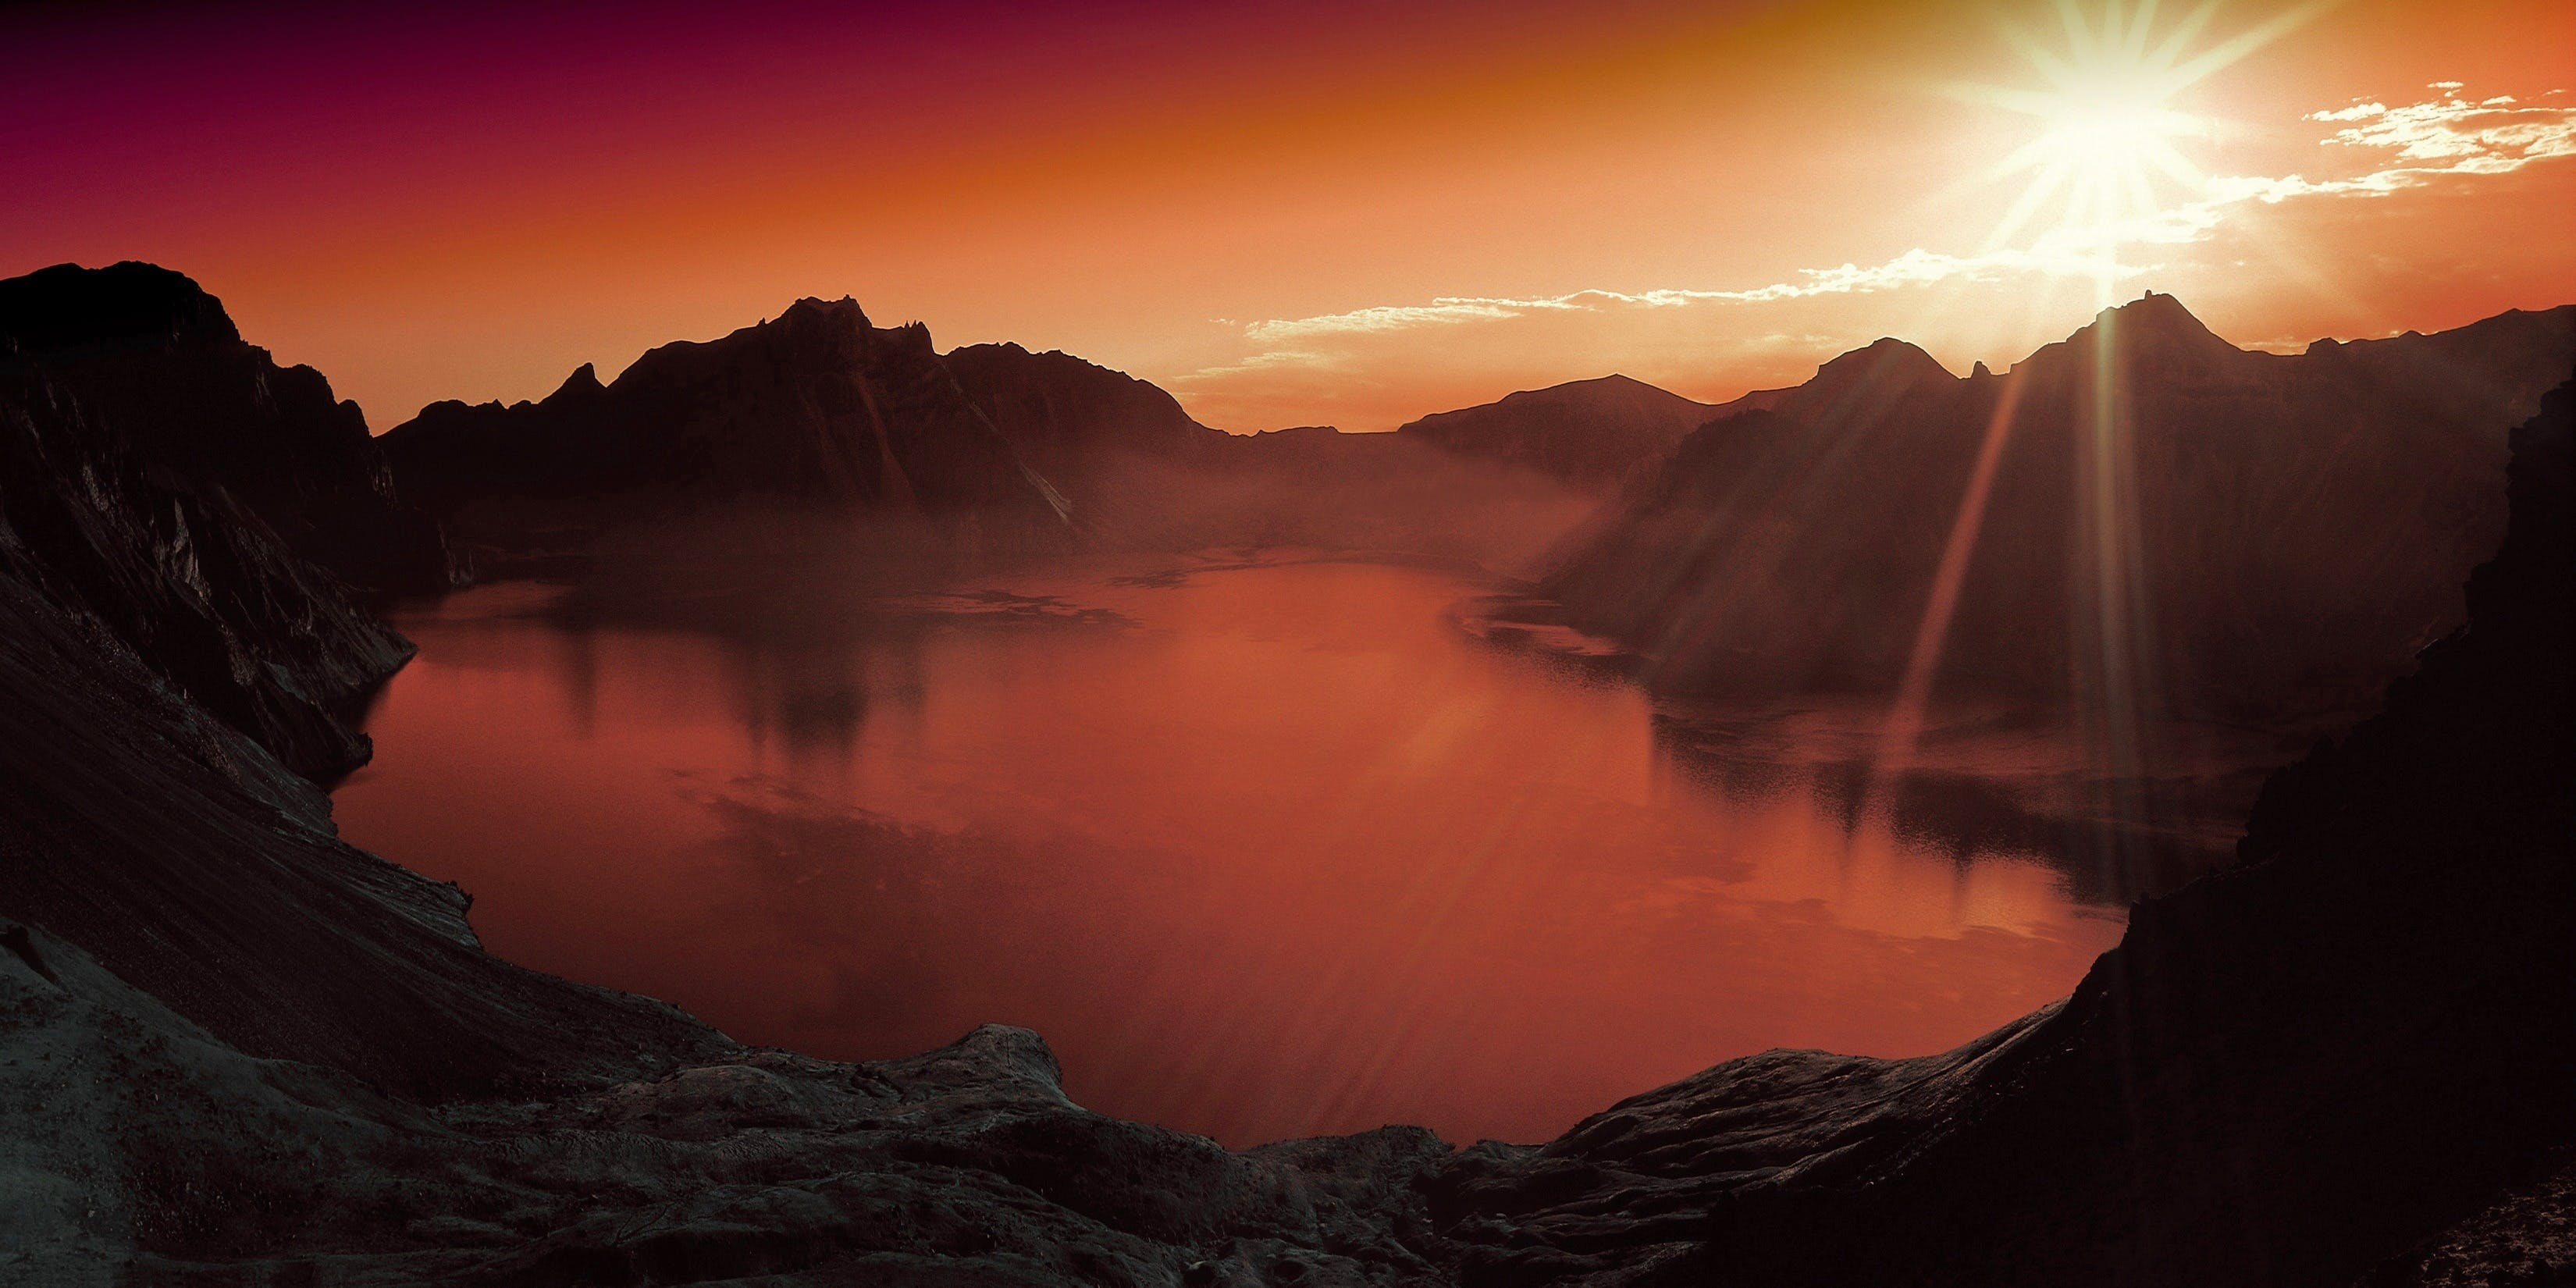 Body of Water Surrounded by Mountains during Sun Set